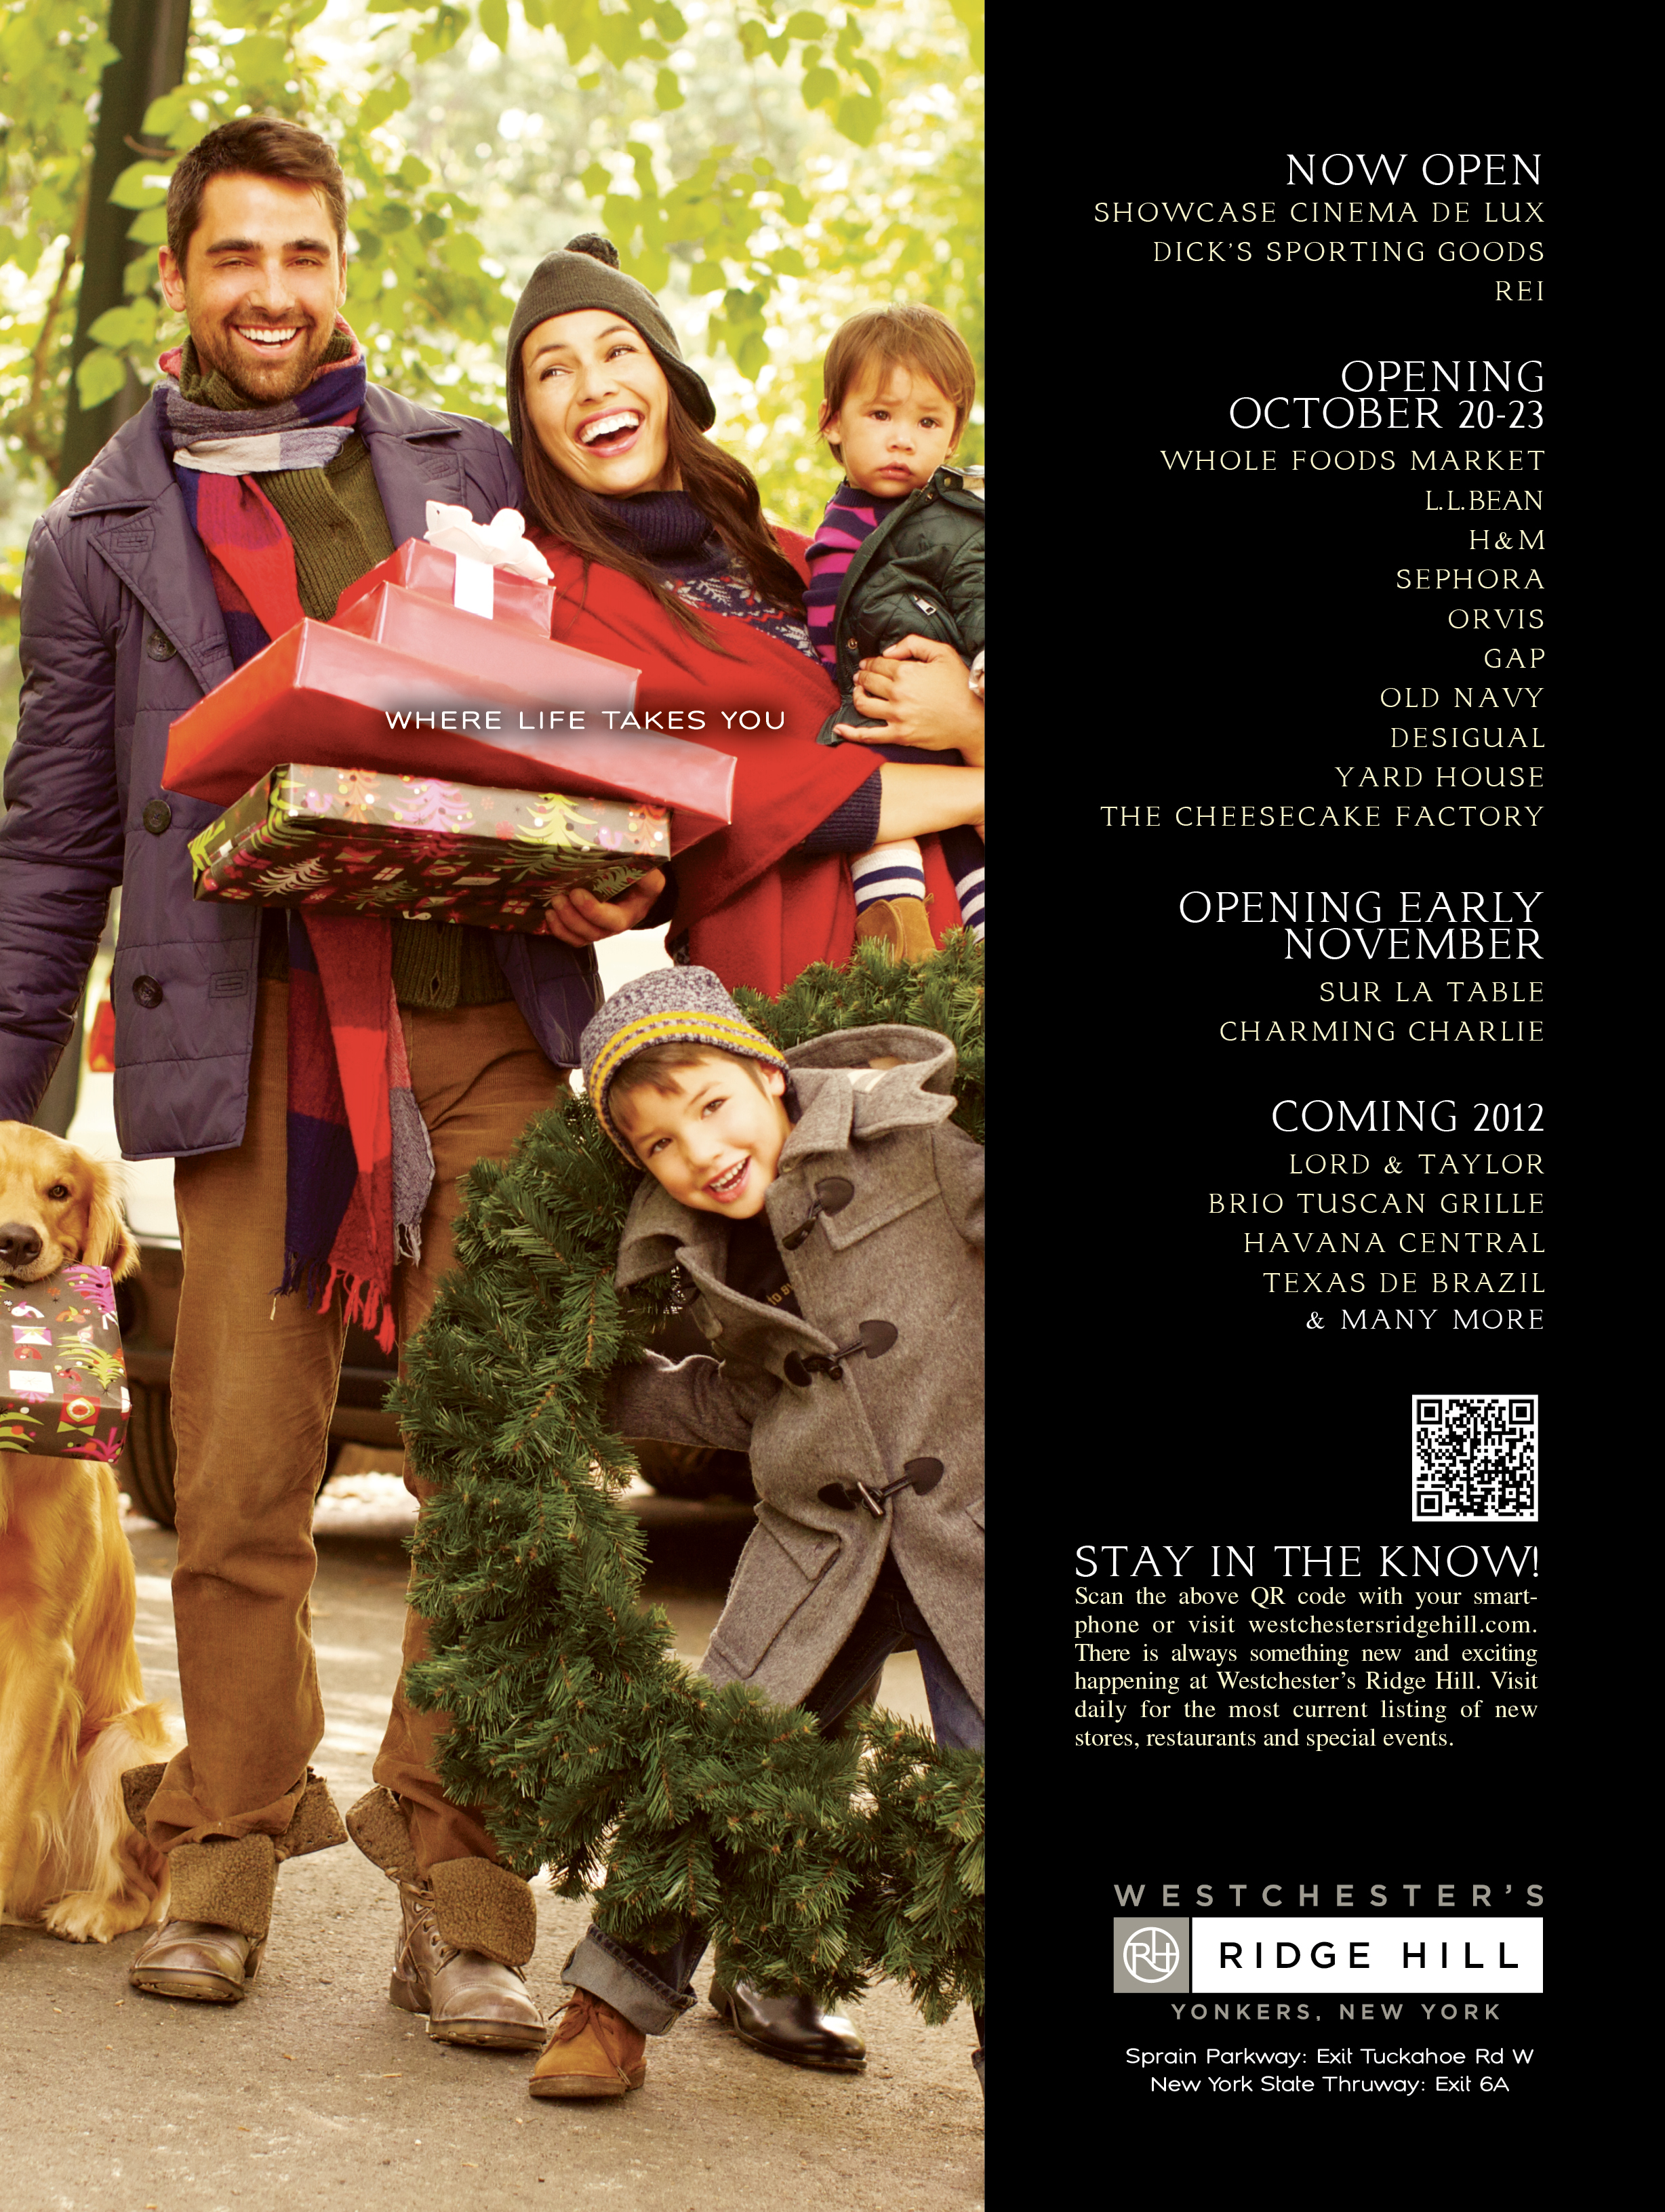 RDH-1251-A01B_RidgeHill_NOV WEST AD.jpg